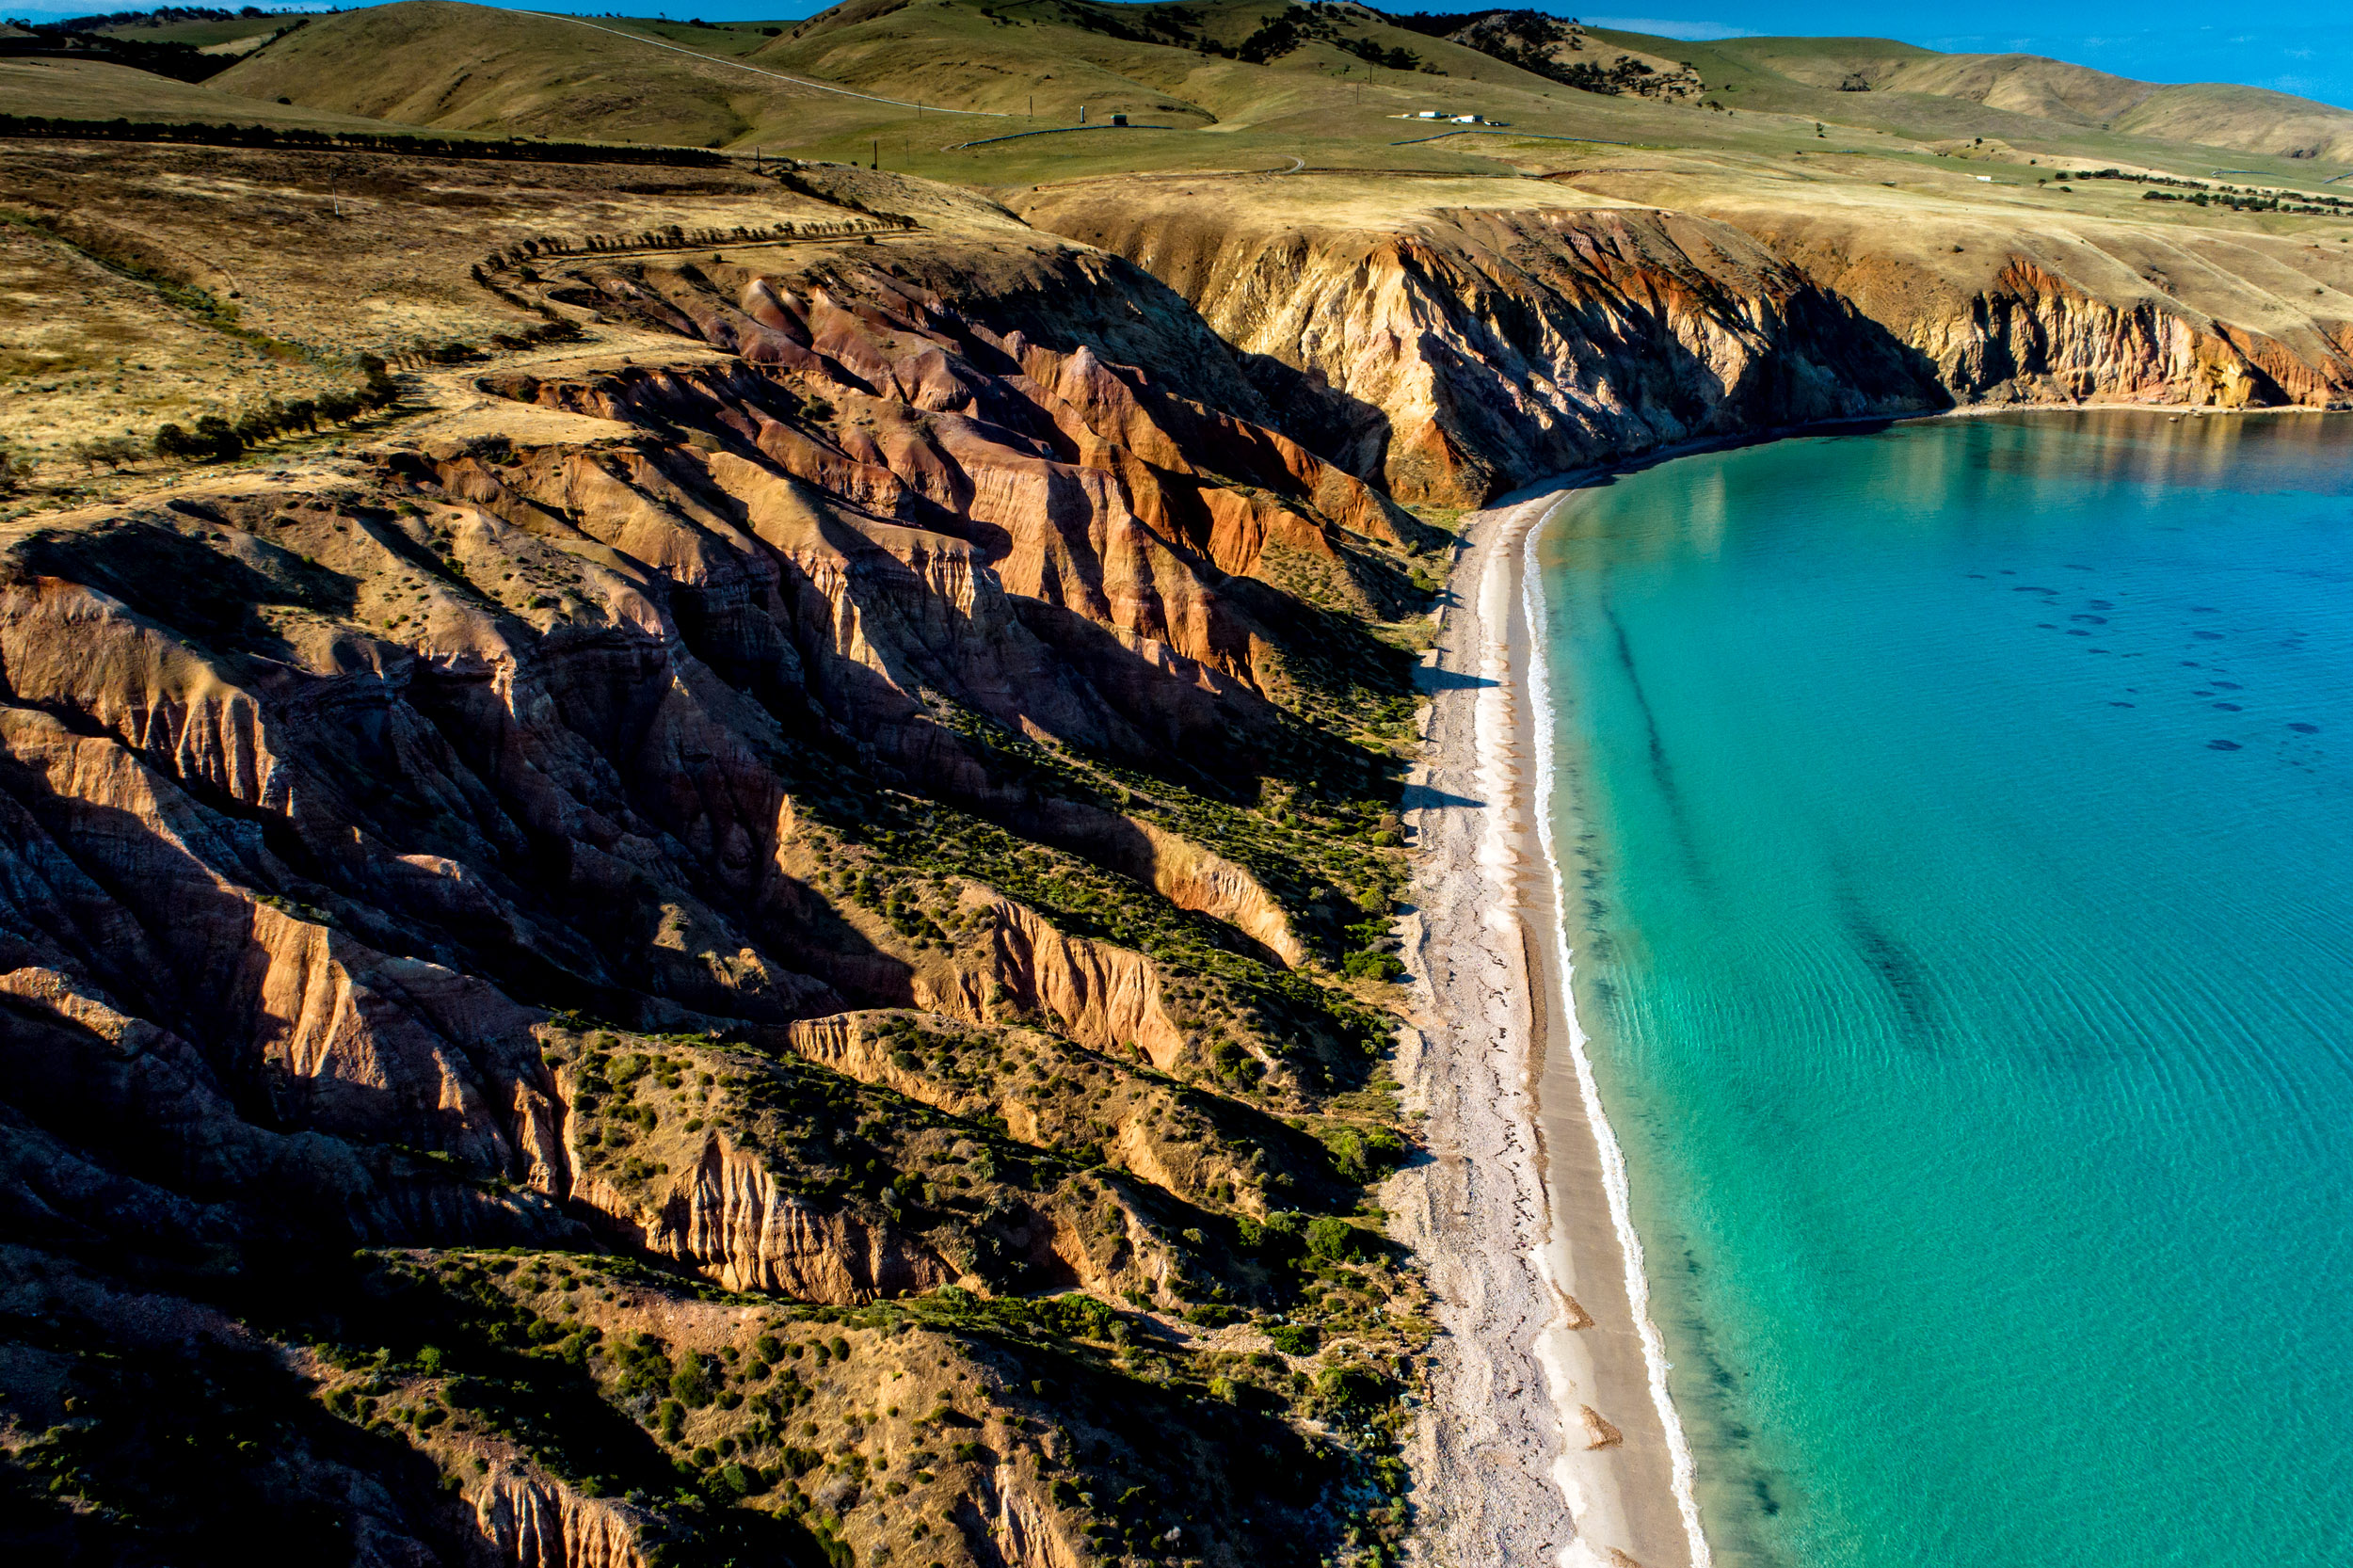 sellicks-beach-cliffs-south-australia.jpg